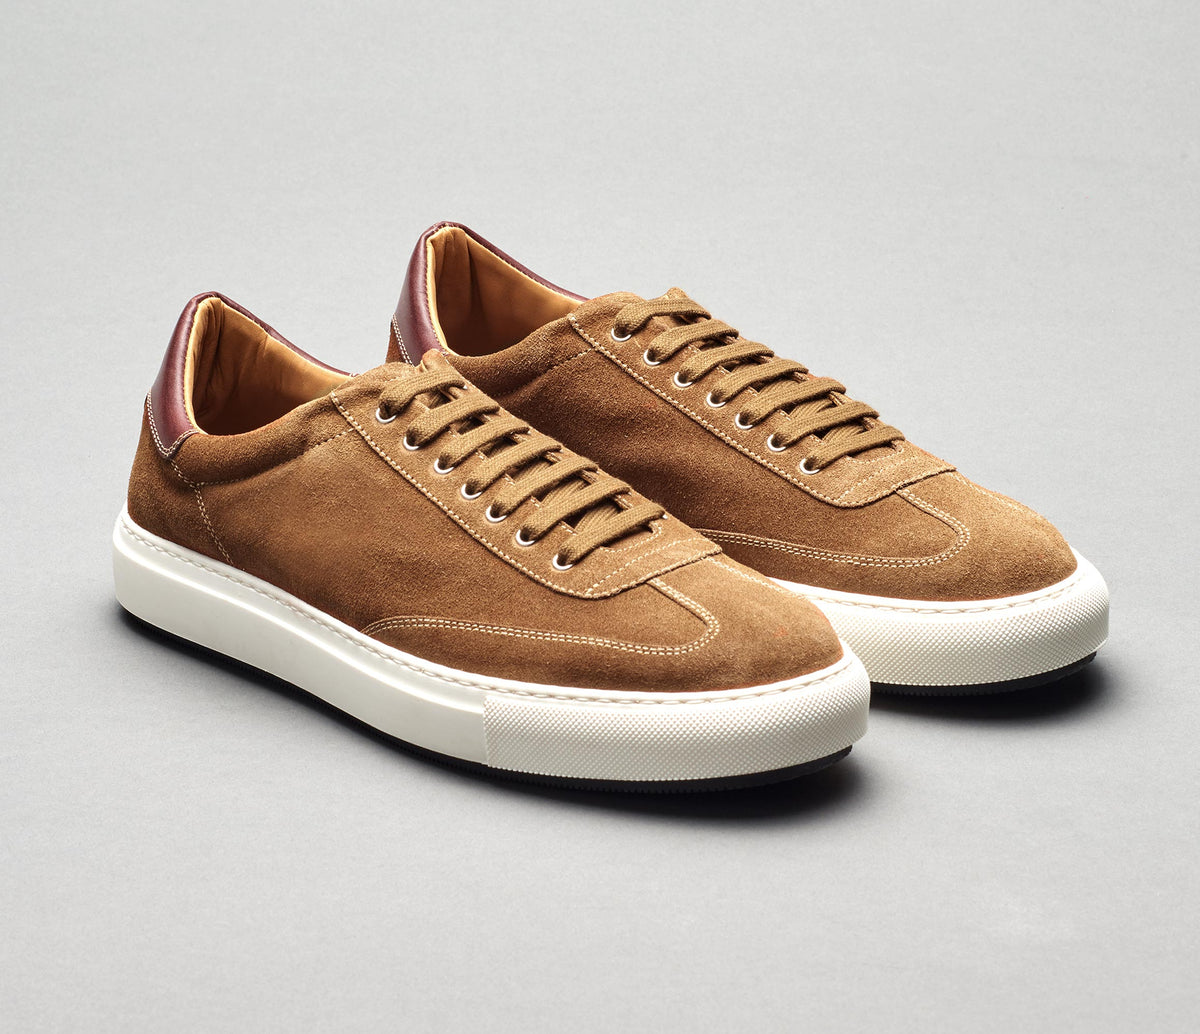 The Capri Martora Men's Dress Sneaker in Suede